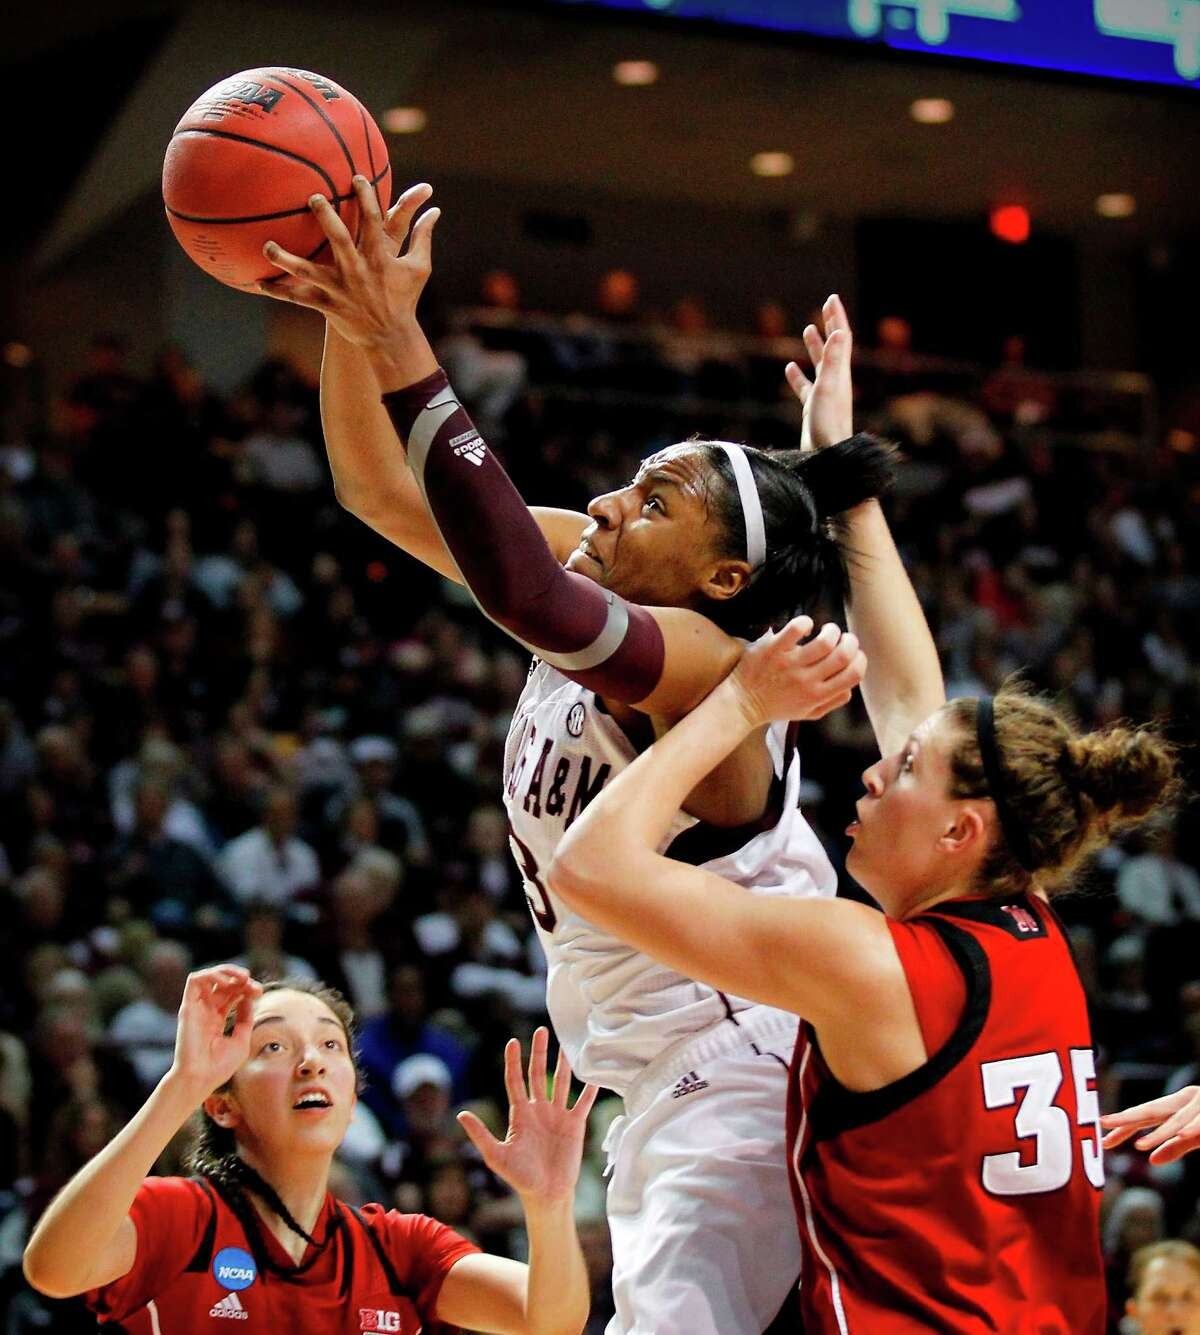 Kelsey Bone averaged 16.6 points and 9.3 rebounds in what turned out to be her last college season.